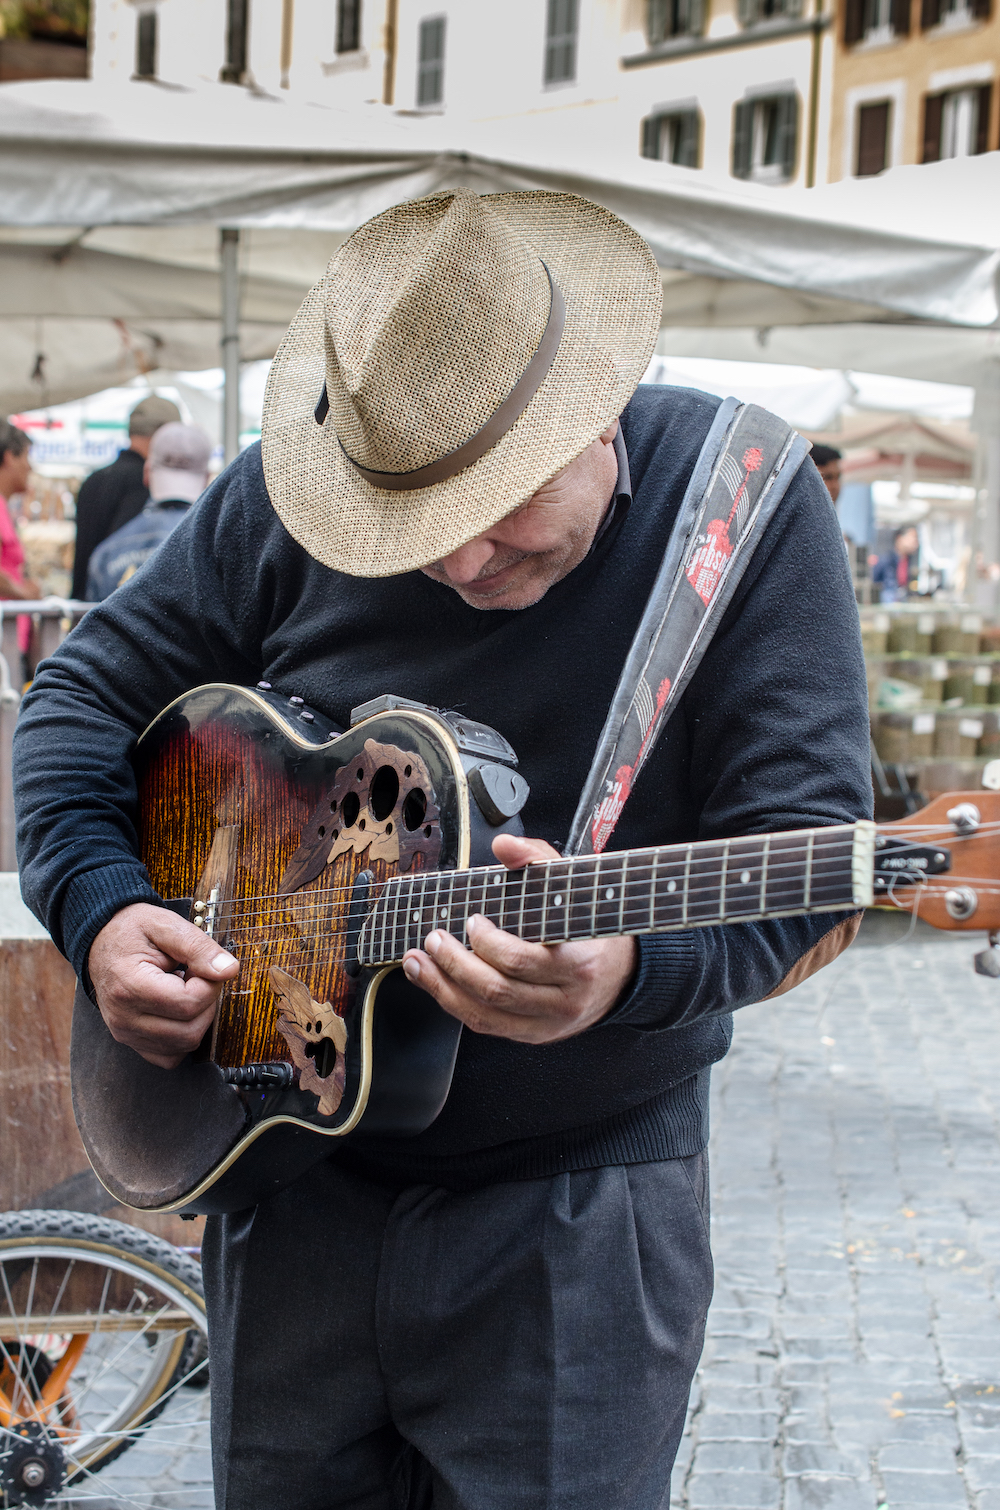 Campo Fiori musician in Rome Italy, photo by Jenny Adams-1001